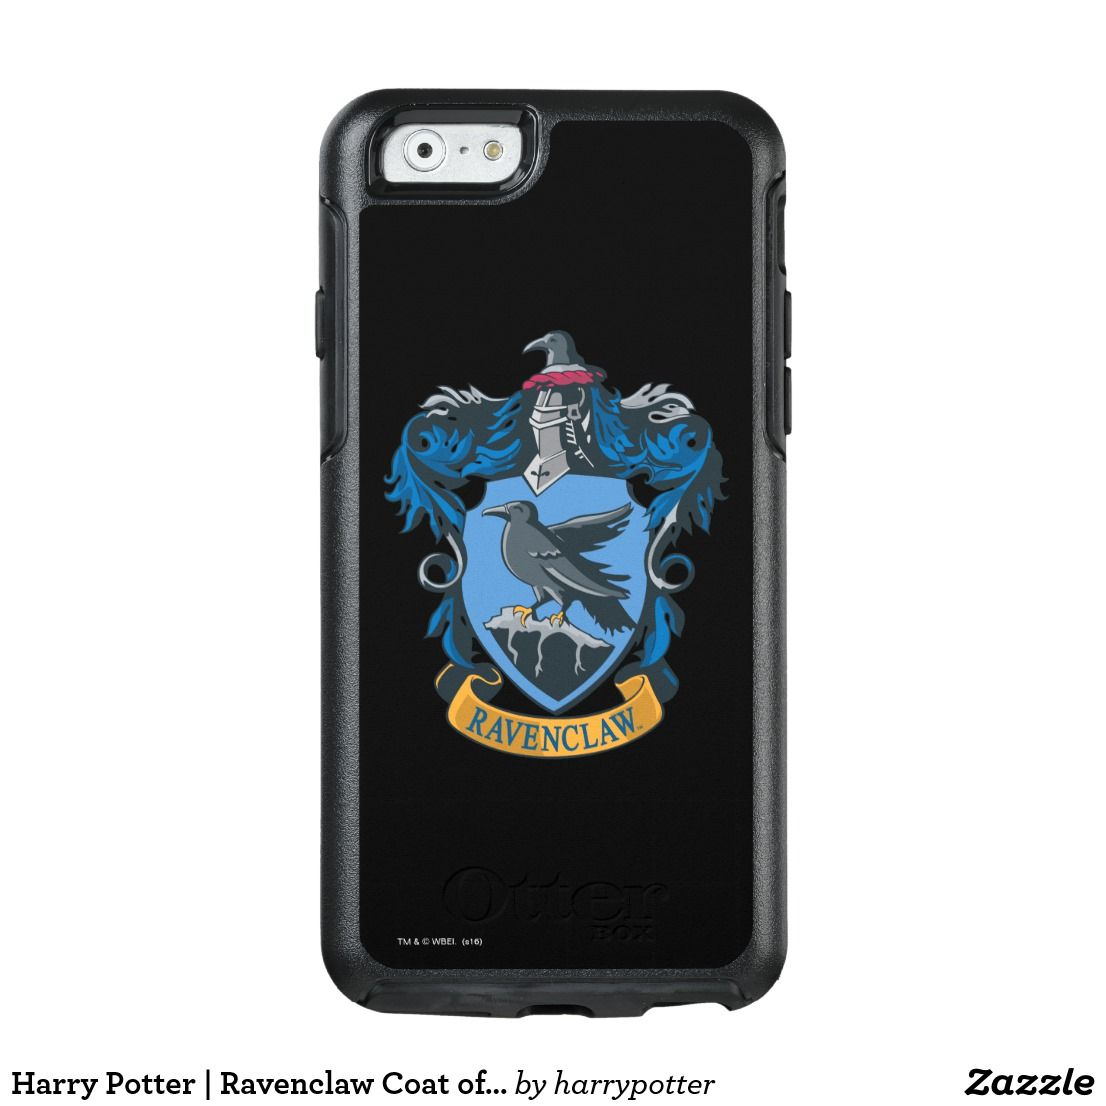 Harry potter ravenclaw coat of arms otterbox iphone case